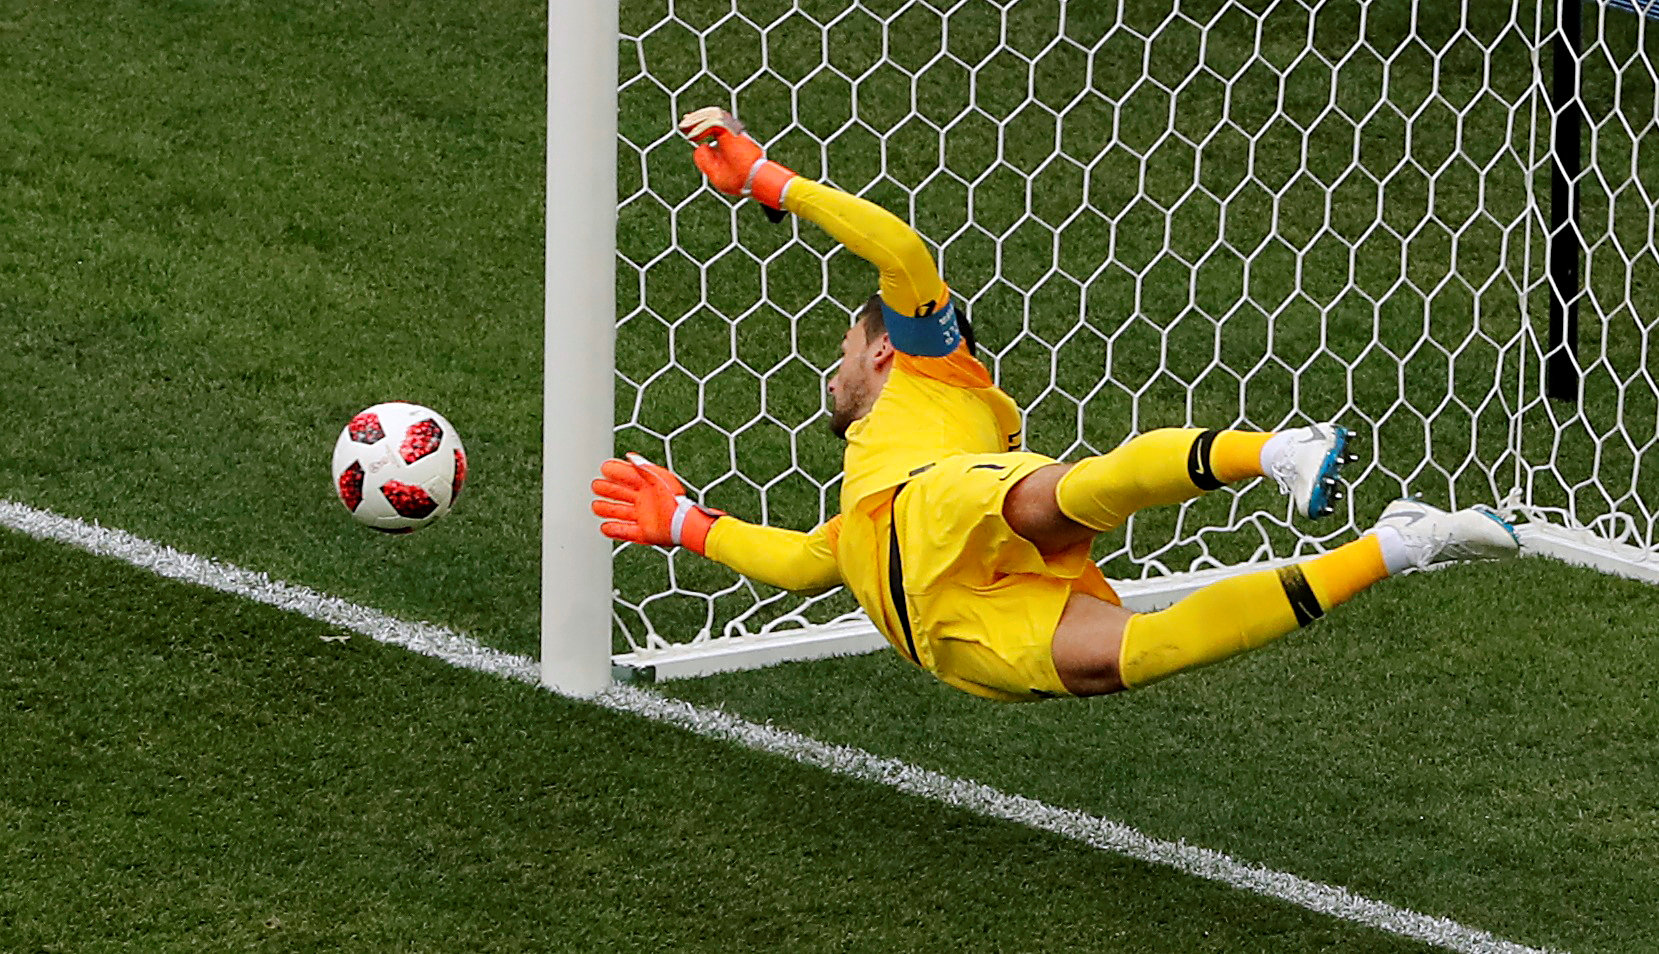 Hugo Lloris produced a stunning save to deny Martin Caceres. Picture: Action Images